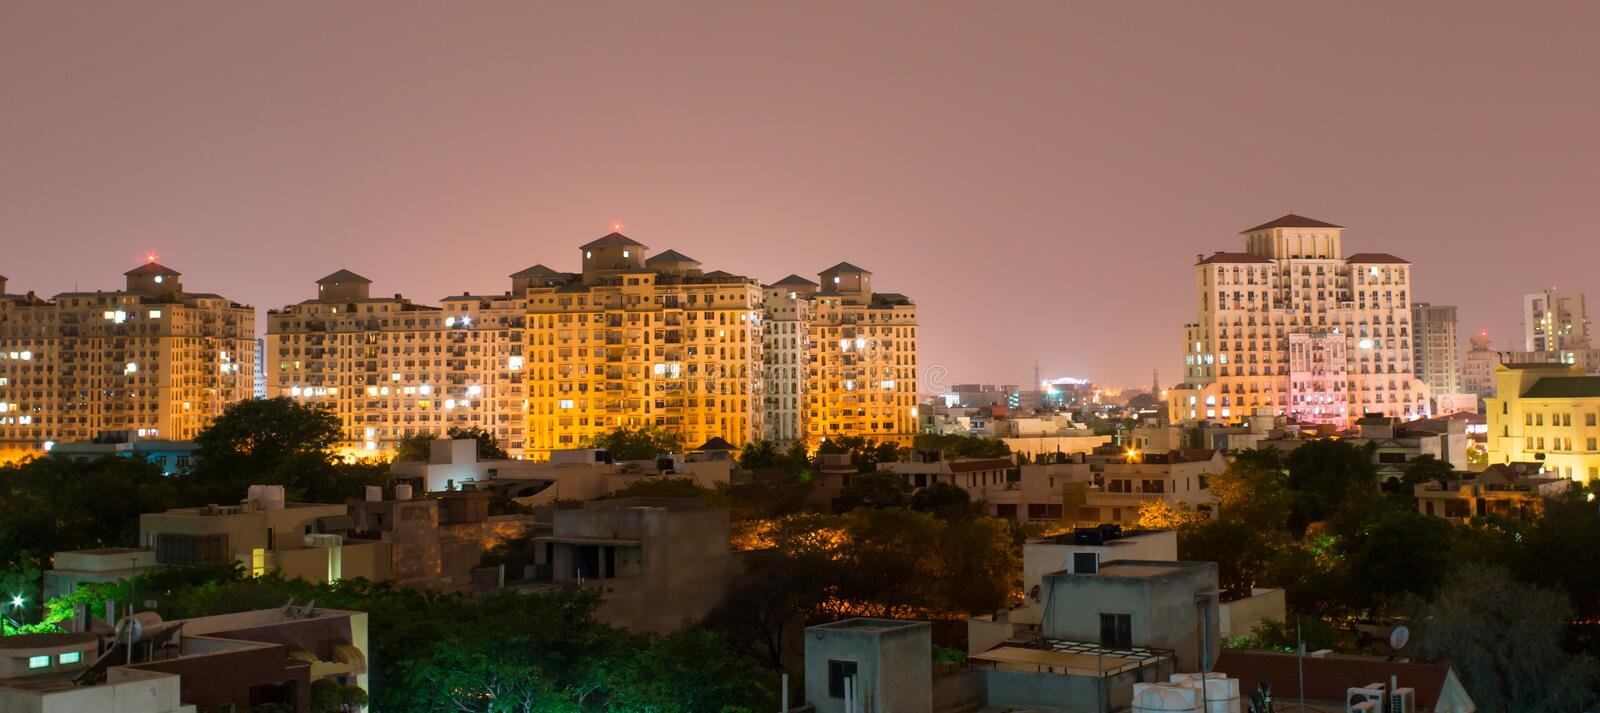 Gurgaon, Indien-Skyline stockfoto